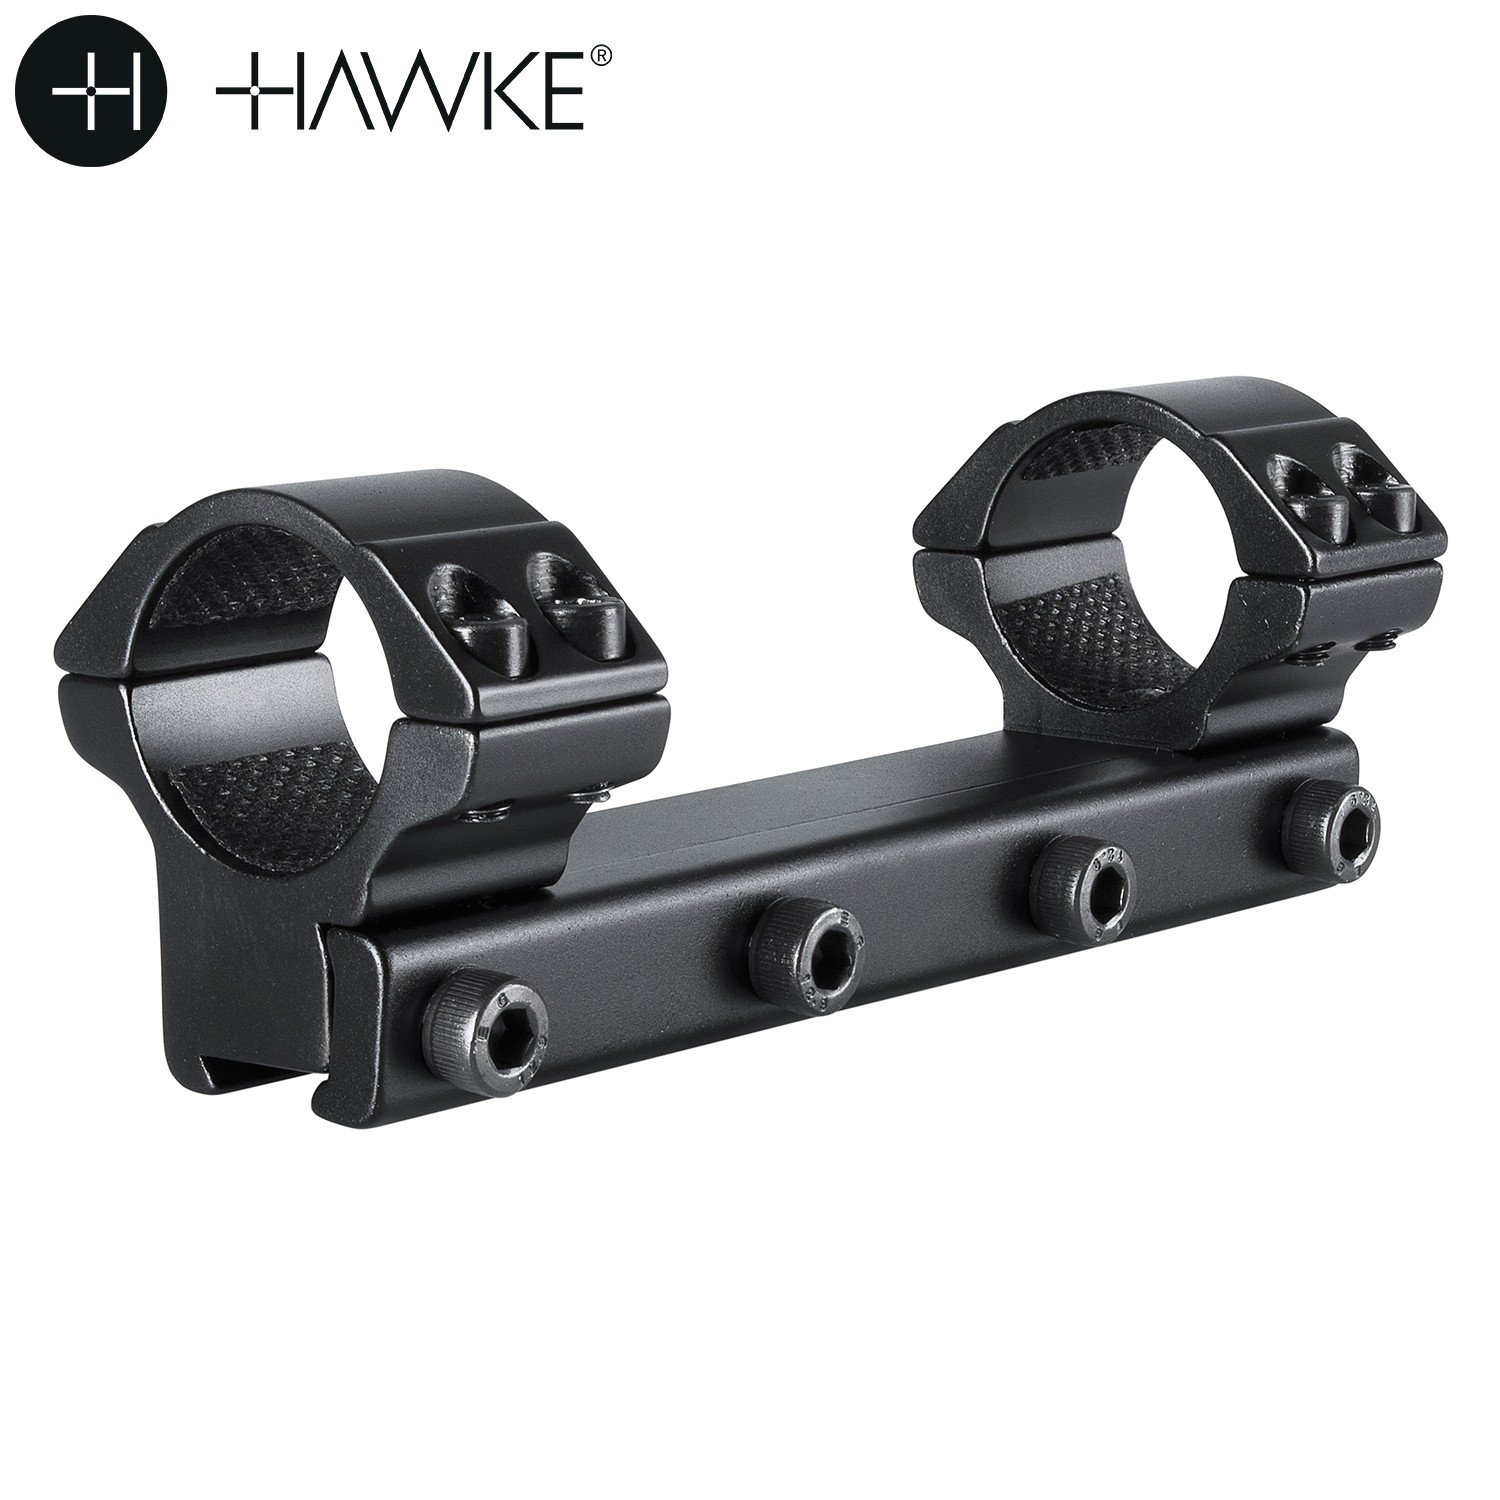 HAWKE 1PC Medium Mount